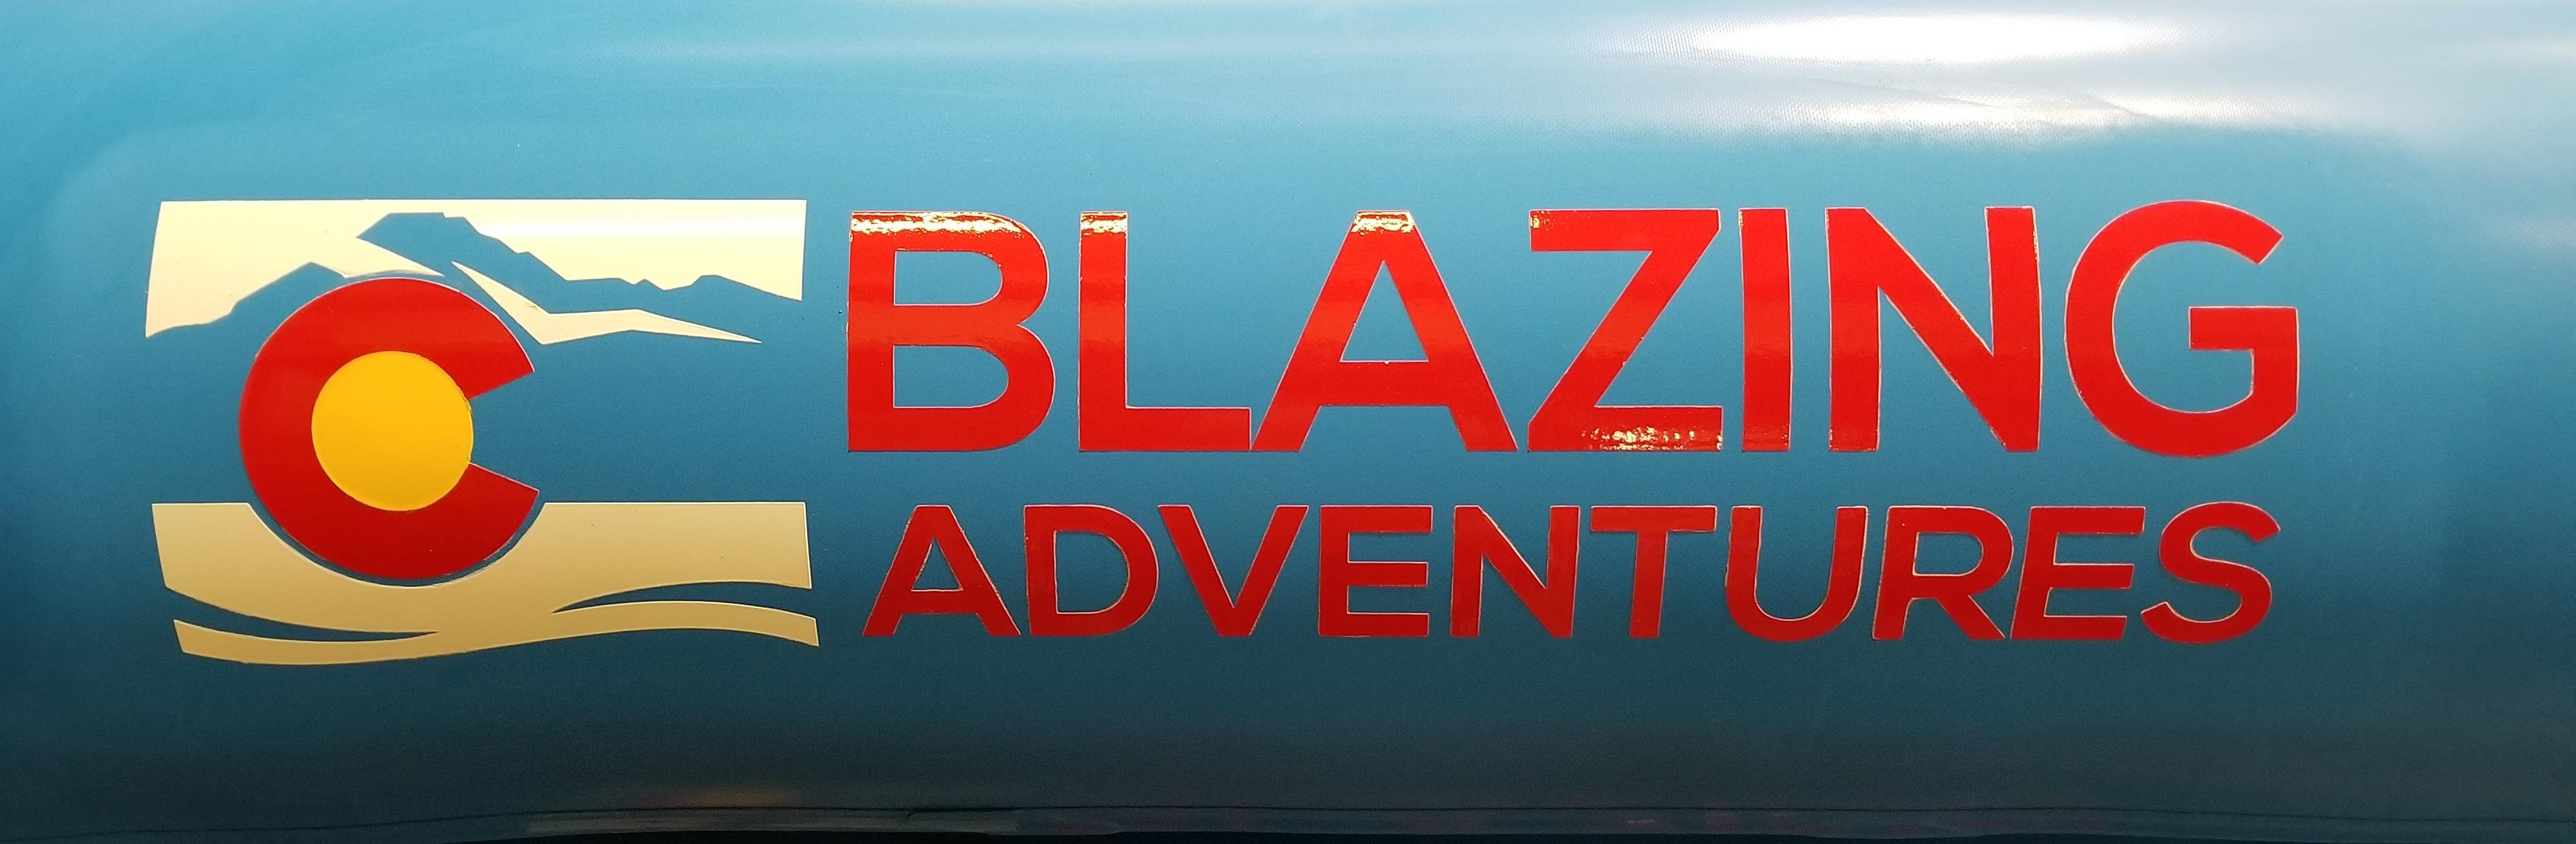 Blazing Adventures Rafting Logo